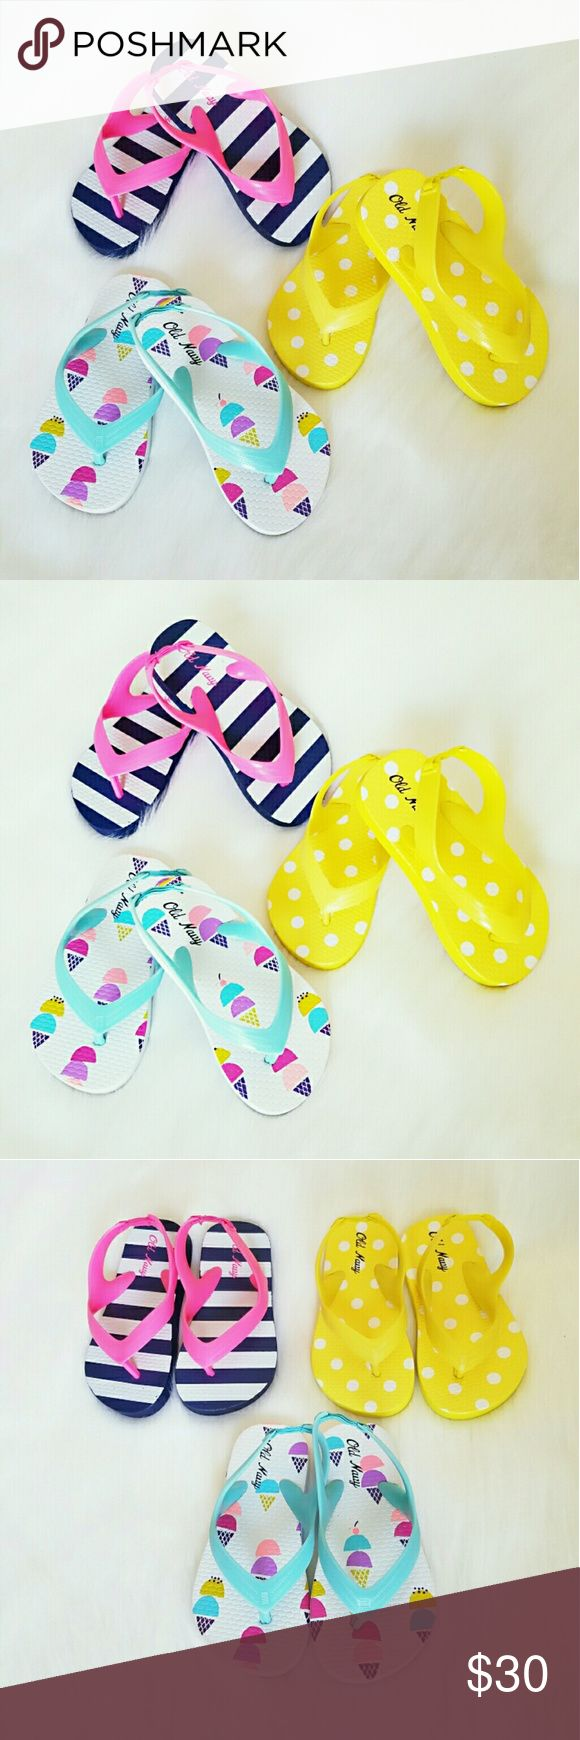 Toddler Flip Flops Get ready for warmer weather in these adorable flip flops. This listing is for 3 pairs.  -Flip-flops feature rubberized upper and synthetic sole. -Straps extend to back and have elasticized heel strap for easy on-and-off. -Firm, non-slip footbed with all-over print. -Textured rubberized outsole for added traction. Old Navy Shoes Sandals & Flip Flops